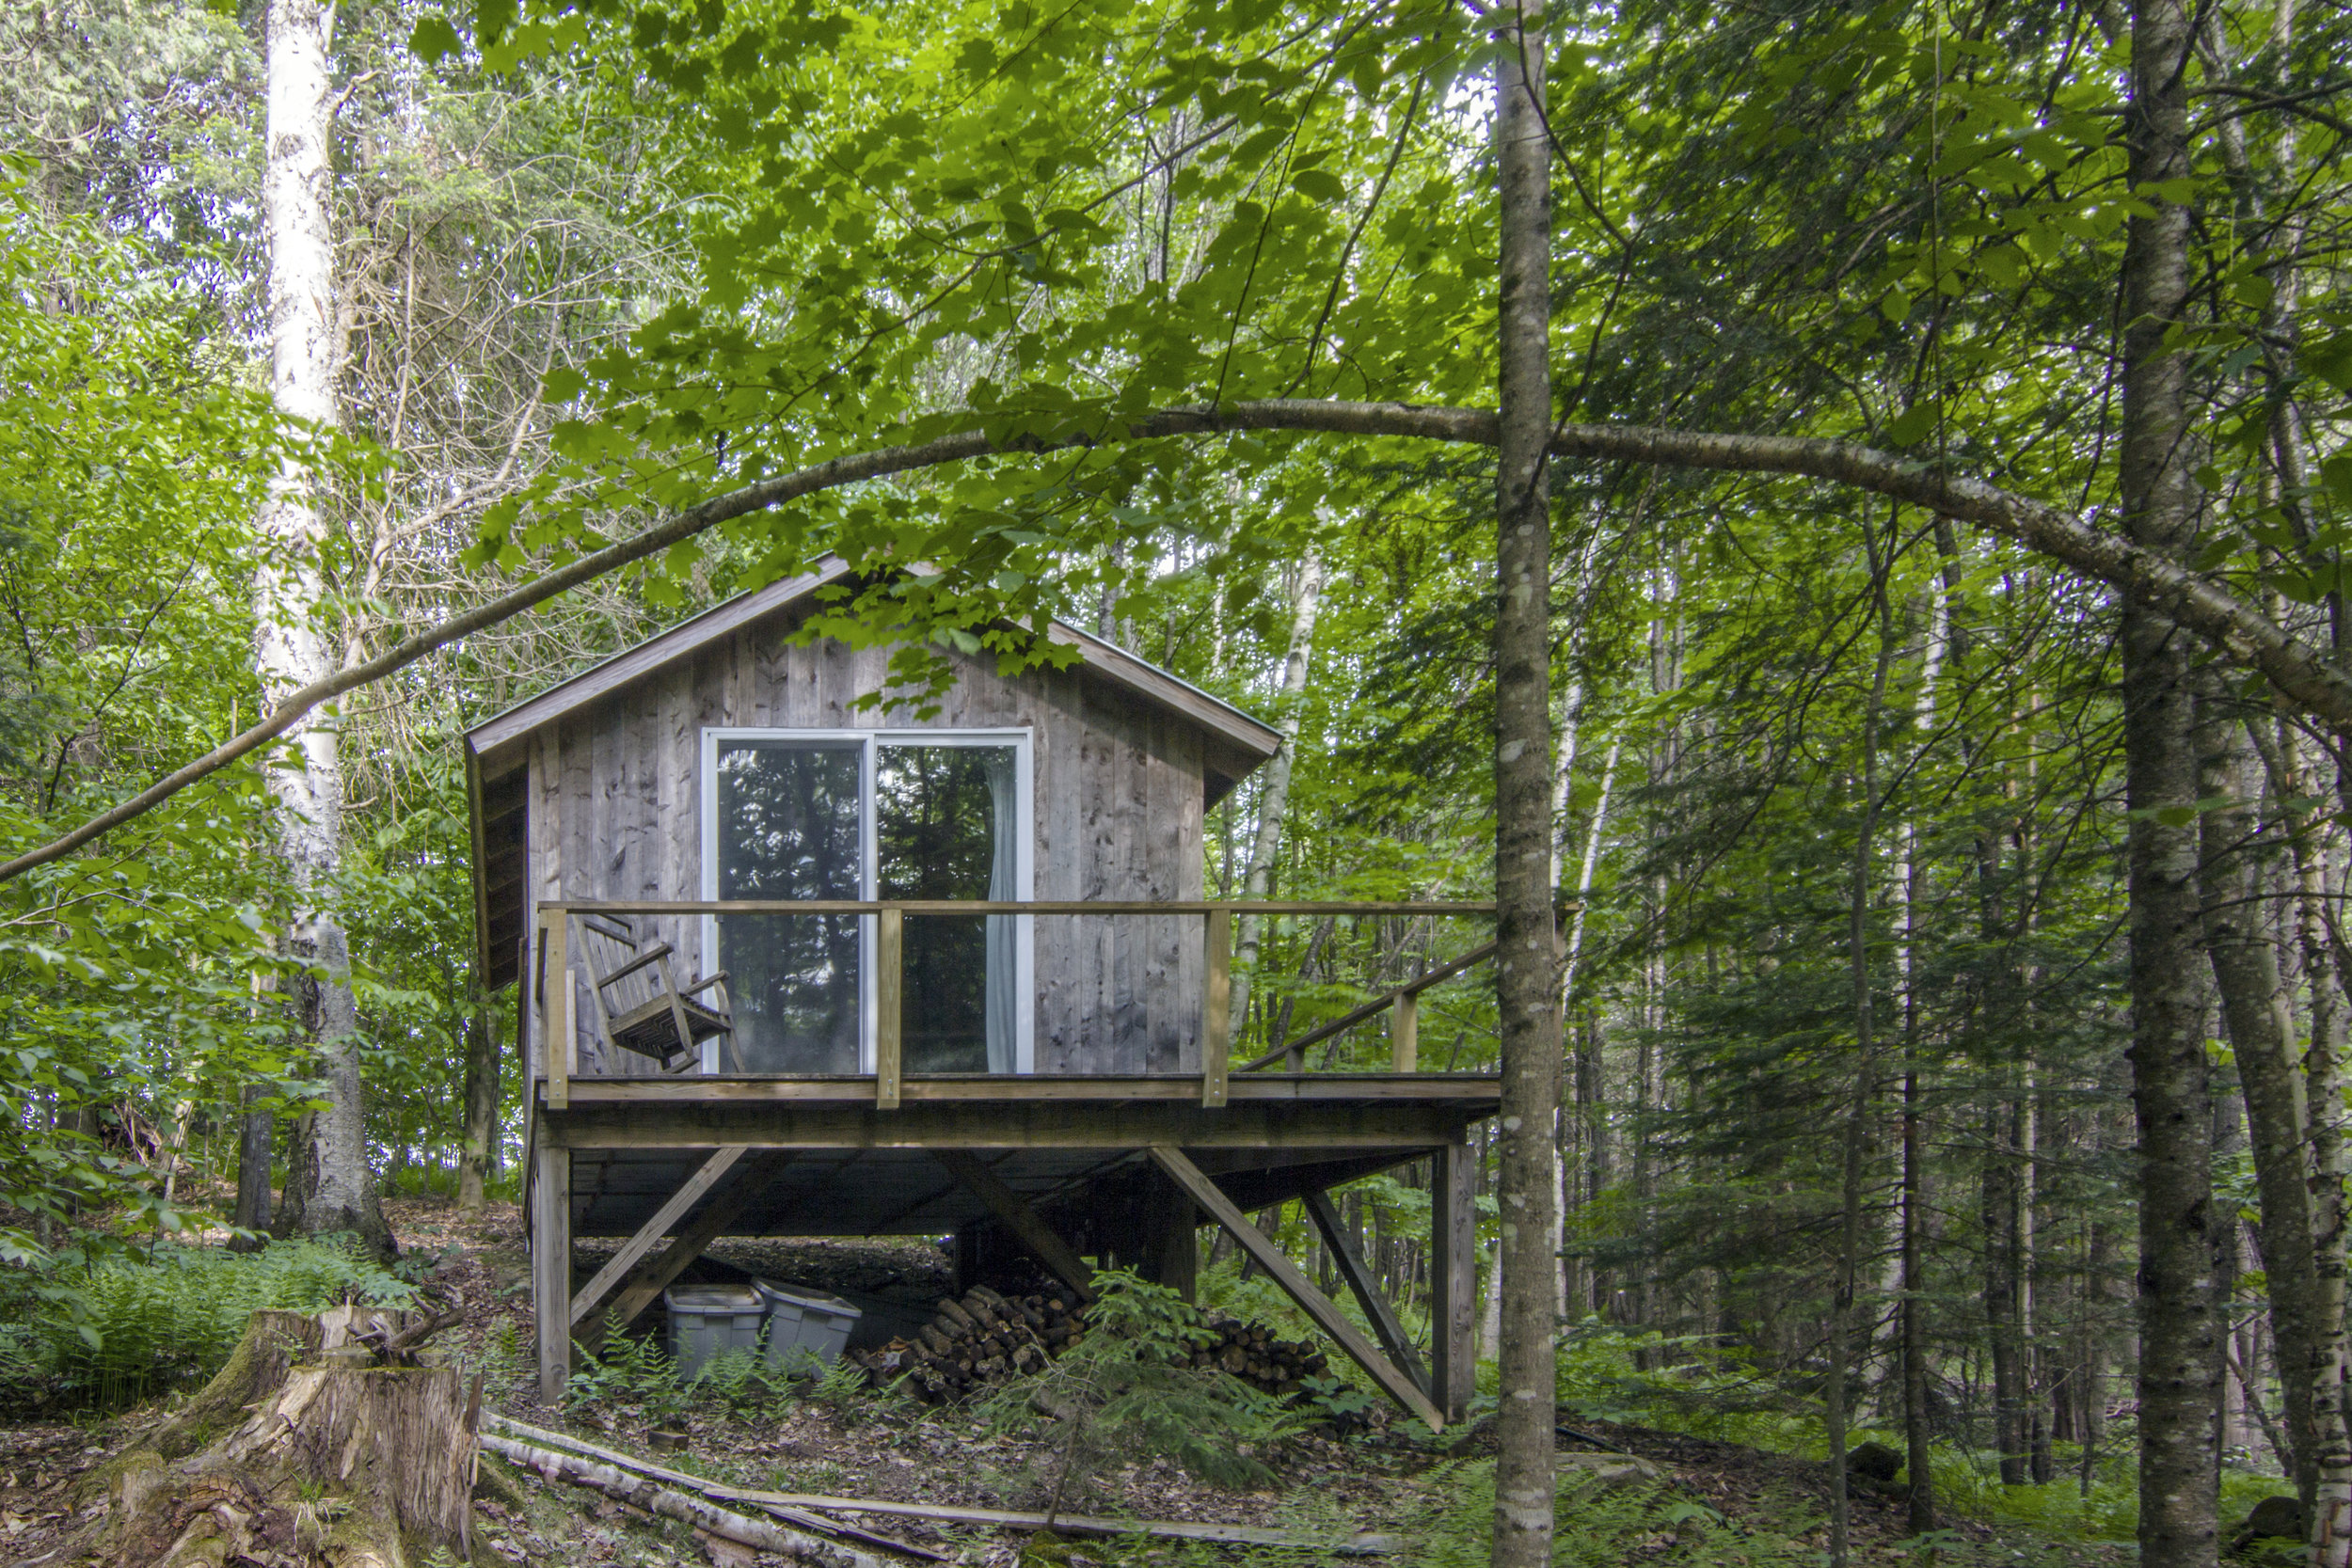 Custom-built cabin in the woods, with a deck